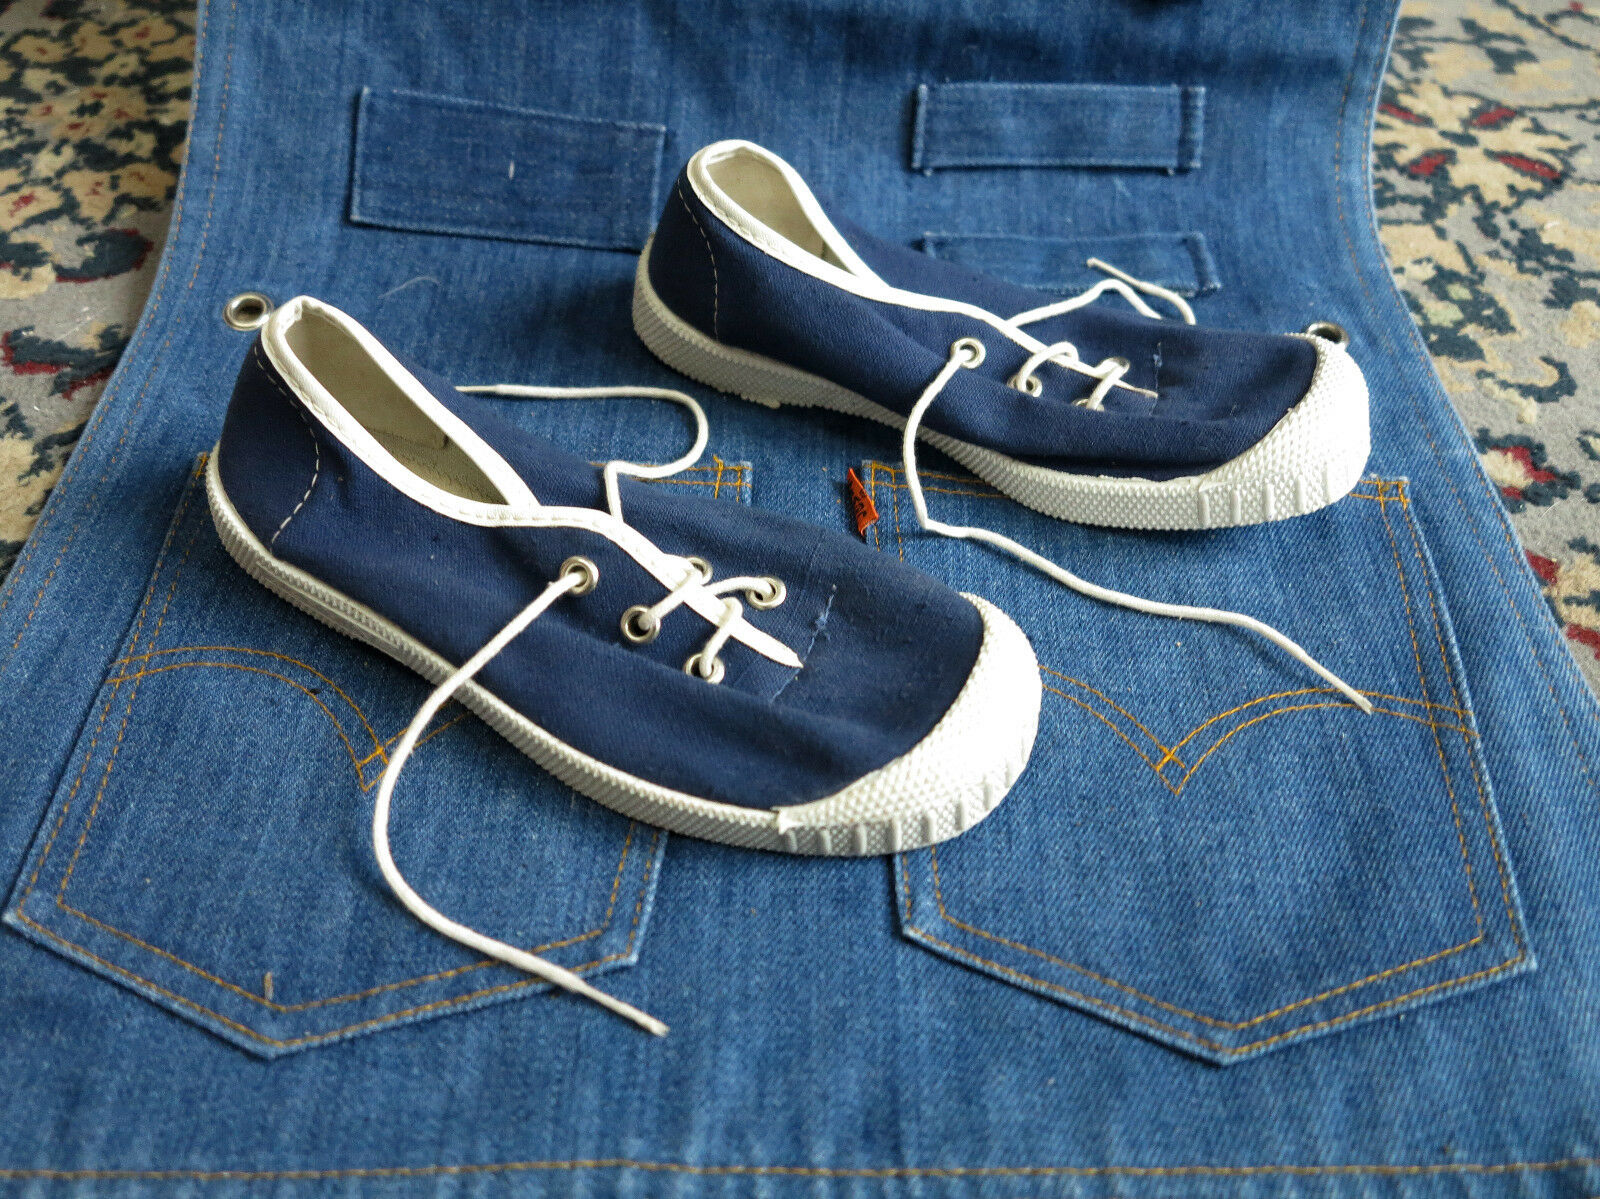 GERMINA Leinen Sport Intra Sneakers  DDR Turnschuhe 70er Sneakers Intra 70s TRUE VINTAGE blau 4de39e